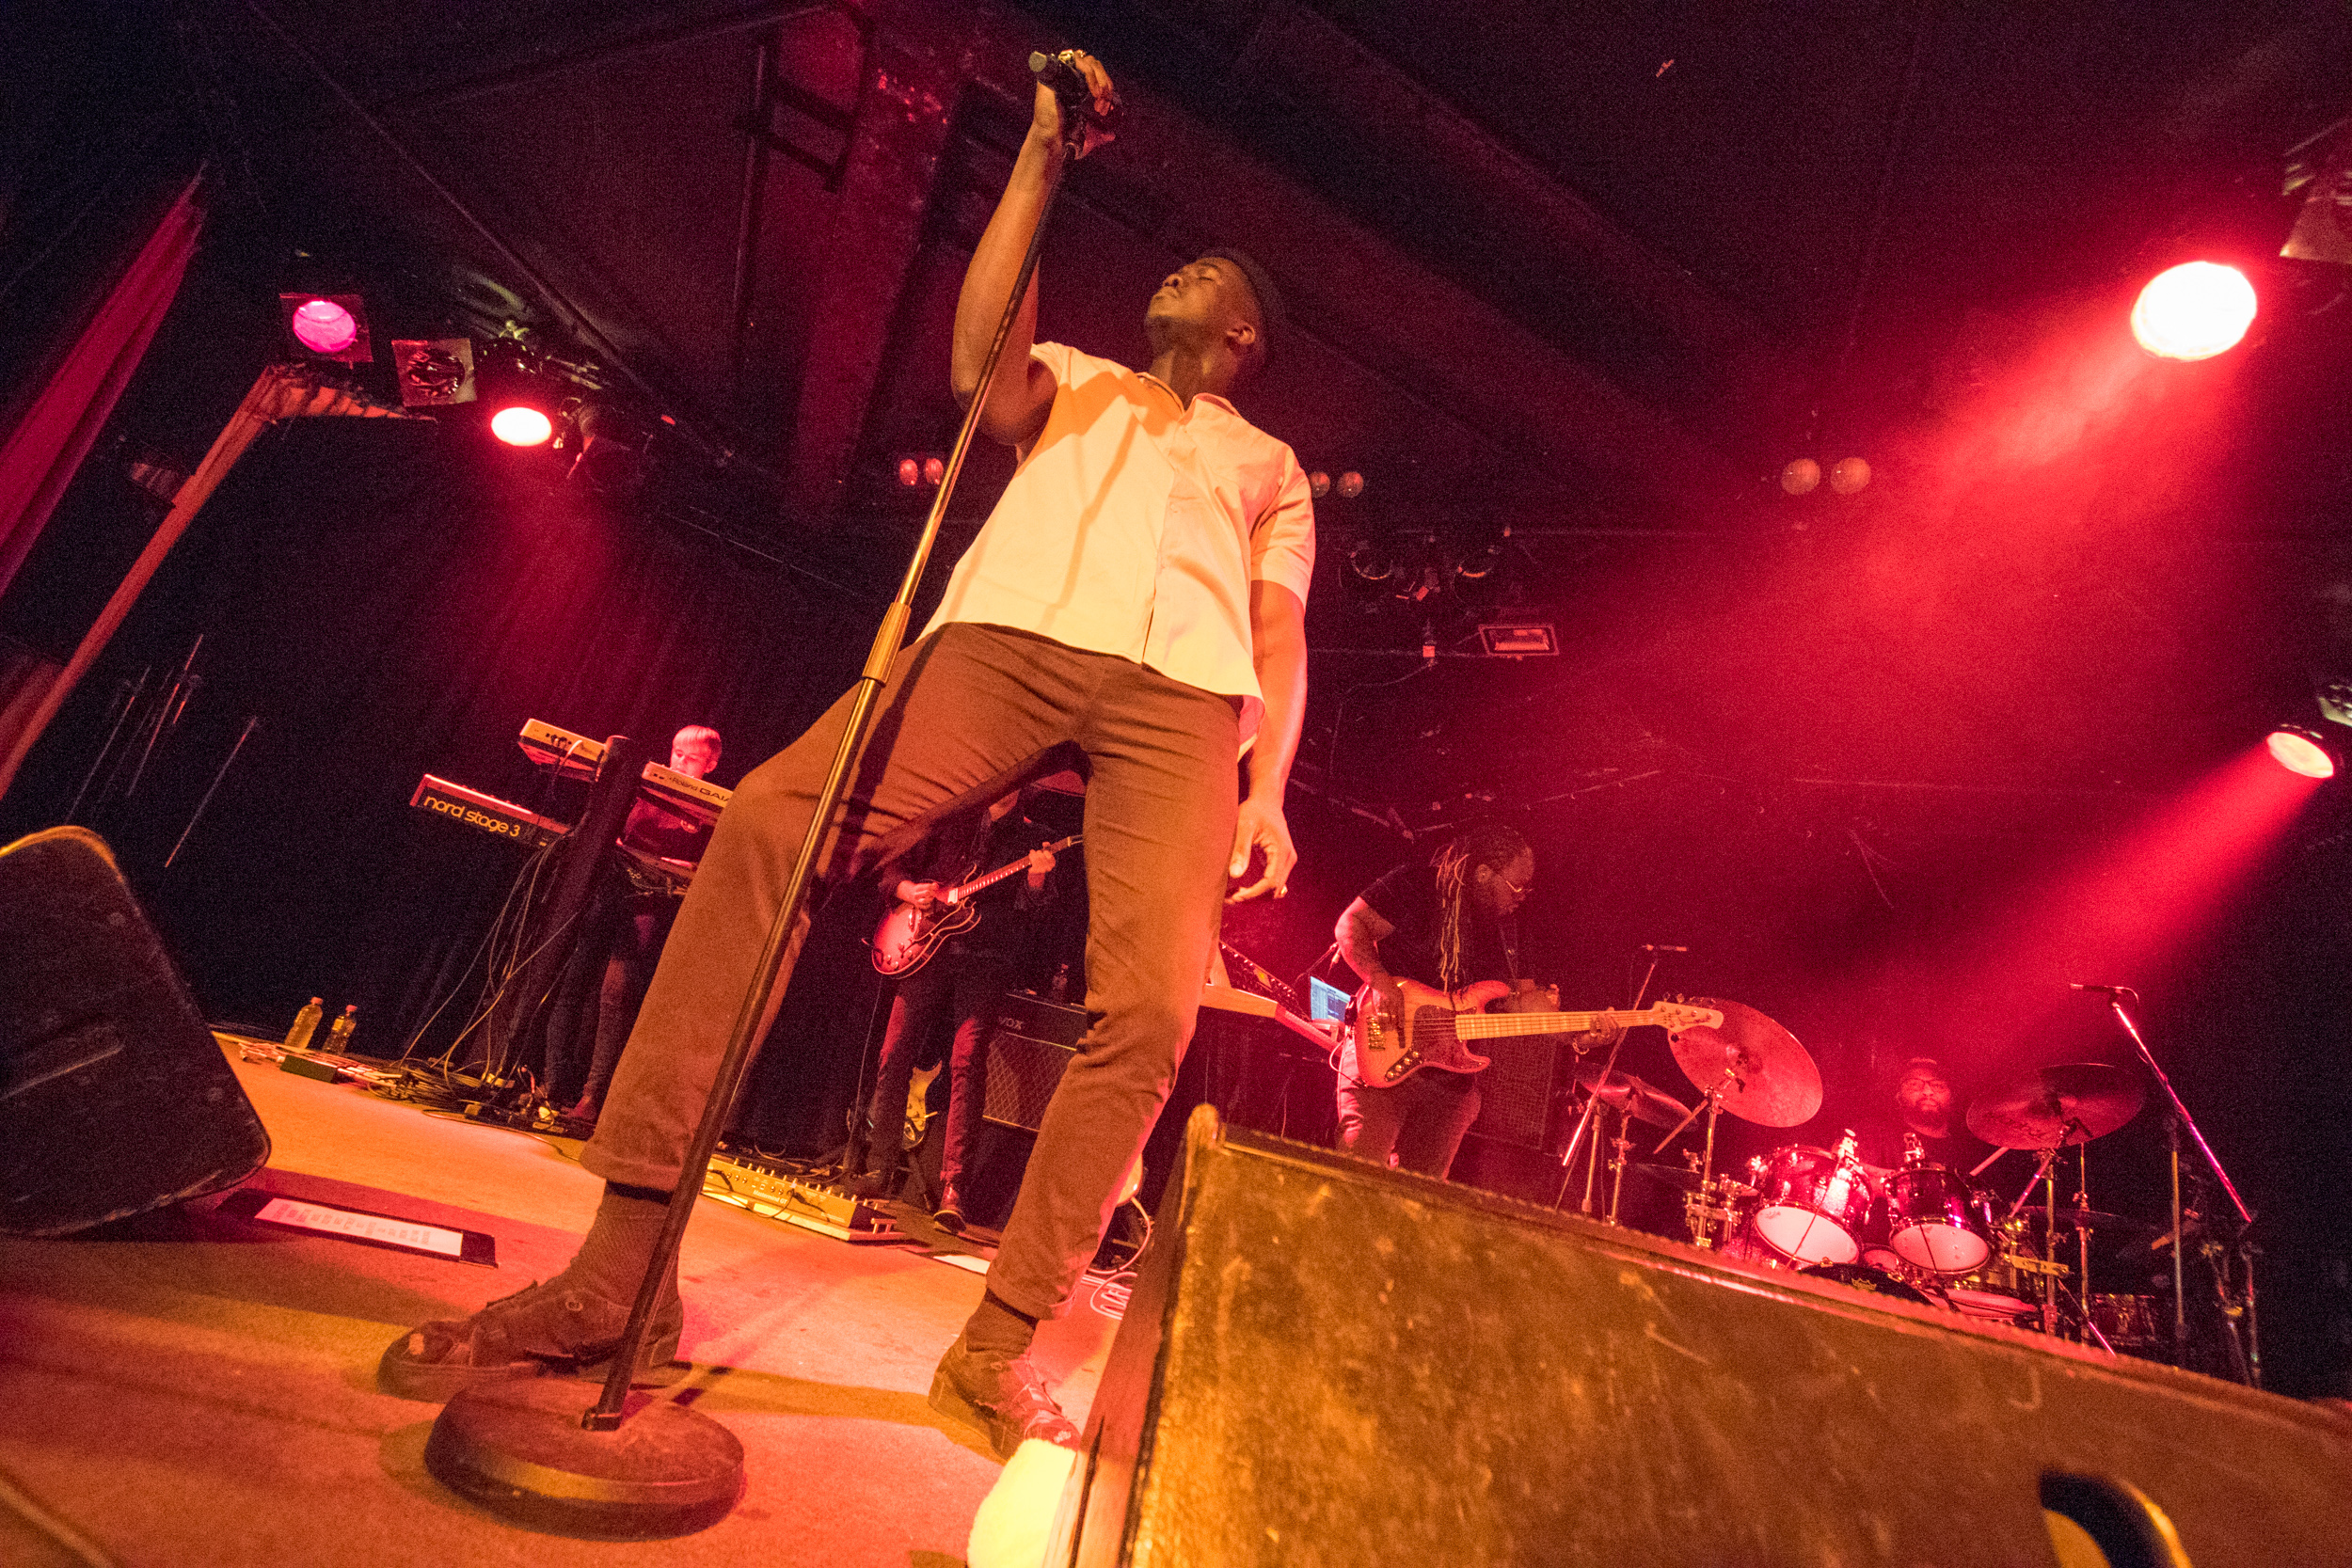 1_JacobBanks_CornerHotel_SarahRix-6040.jpg